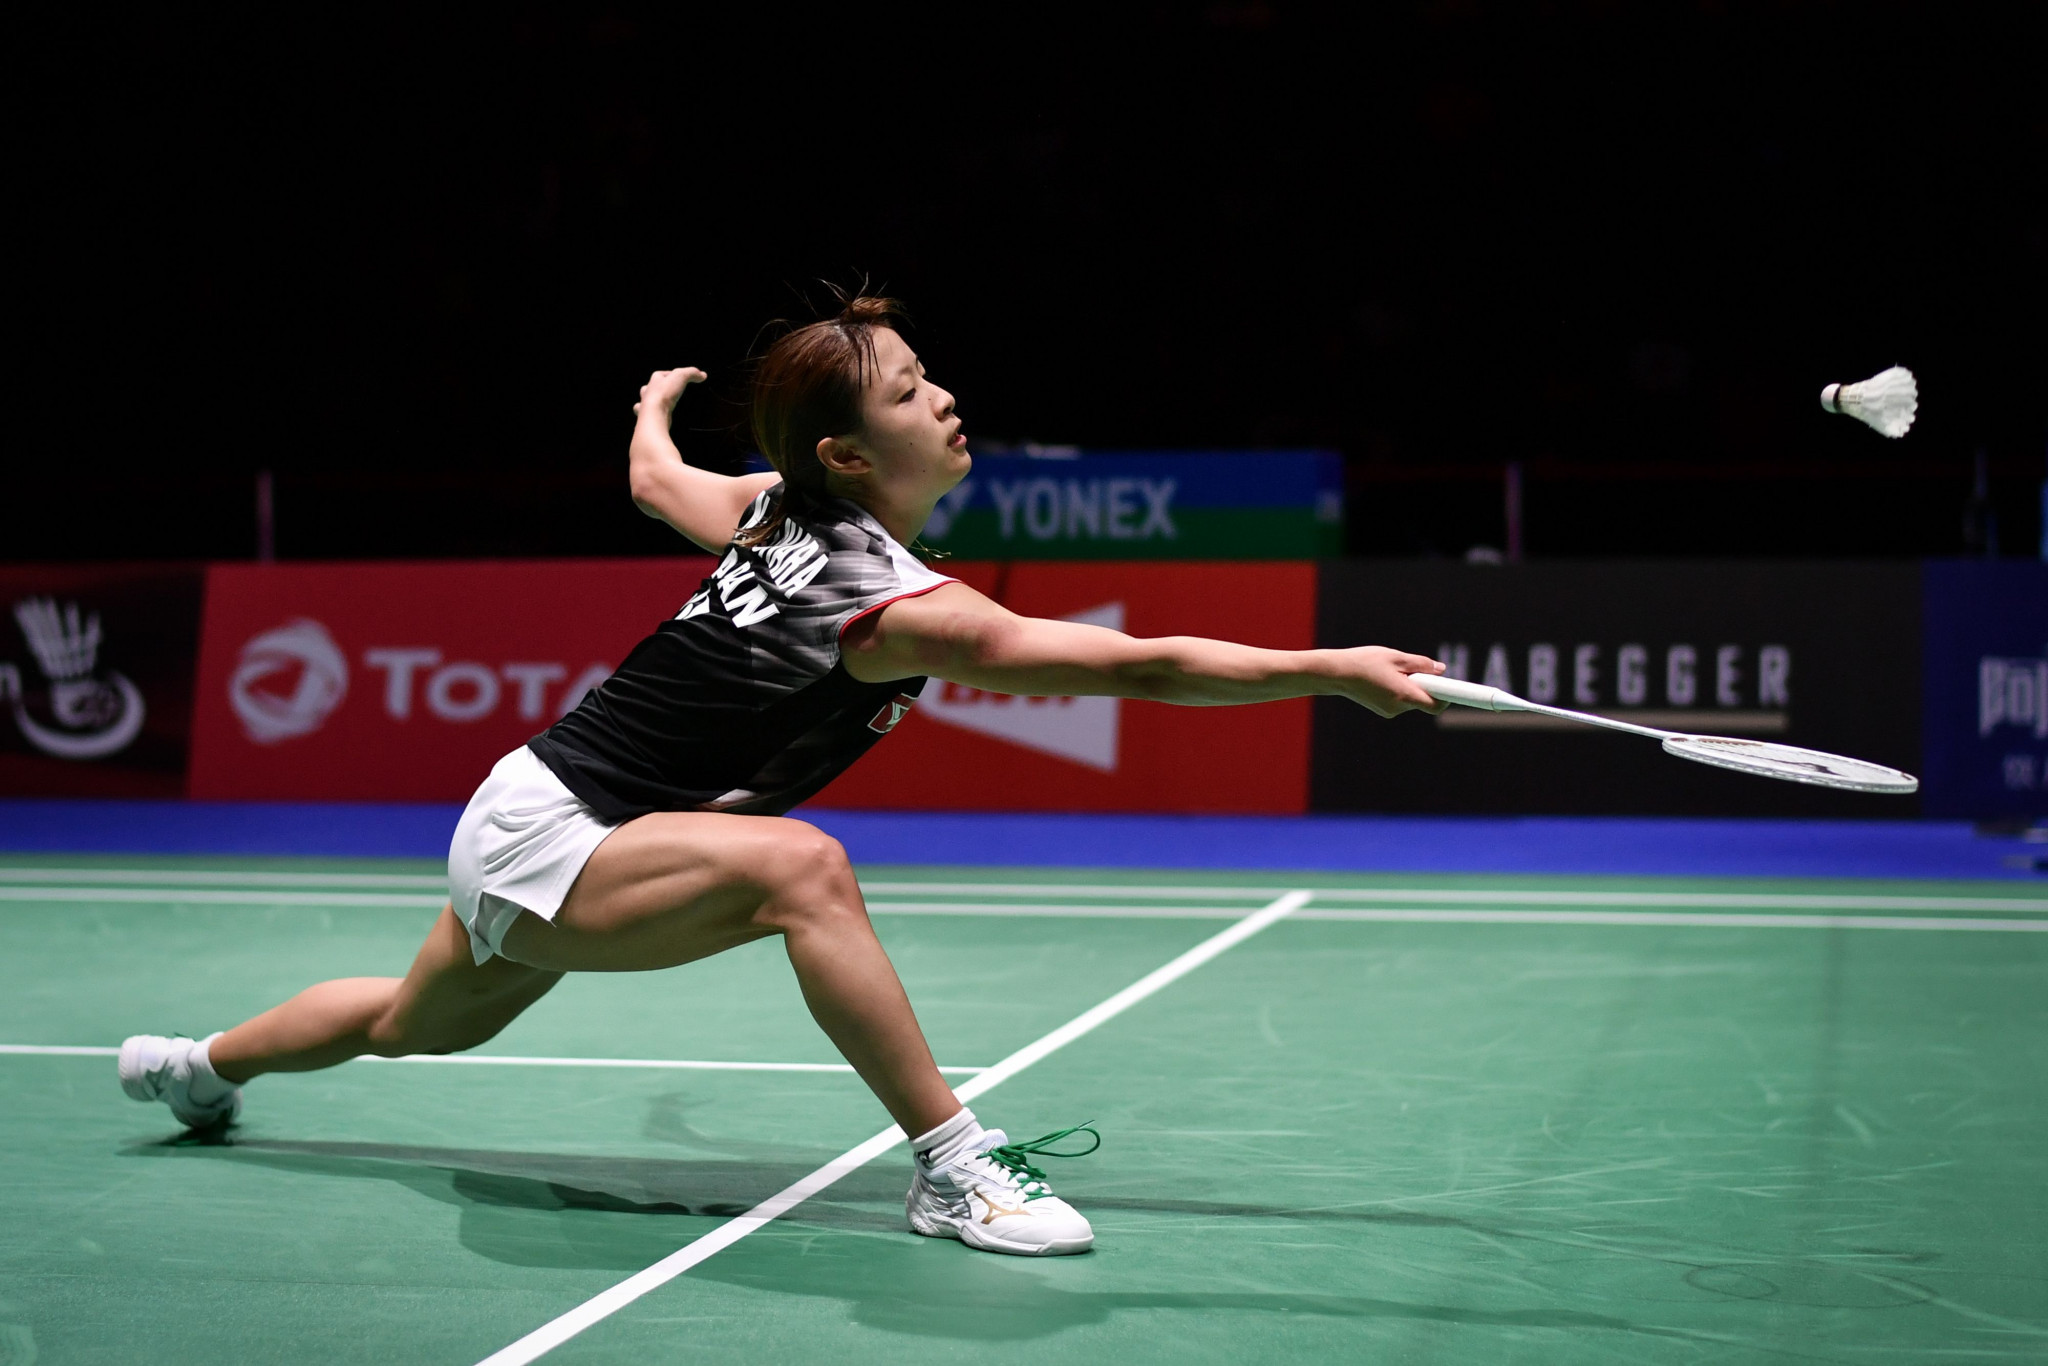 Rio 2016 bronze medallist Nozomi Okuhara is second seed for next month's All England Open Badminton Championships in Birmingham, at which Japanese players will return to the main tour following their withdrawal from recent events in Thailand for coronavirus-related reasons ©Getty Images